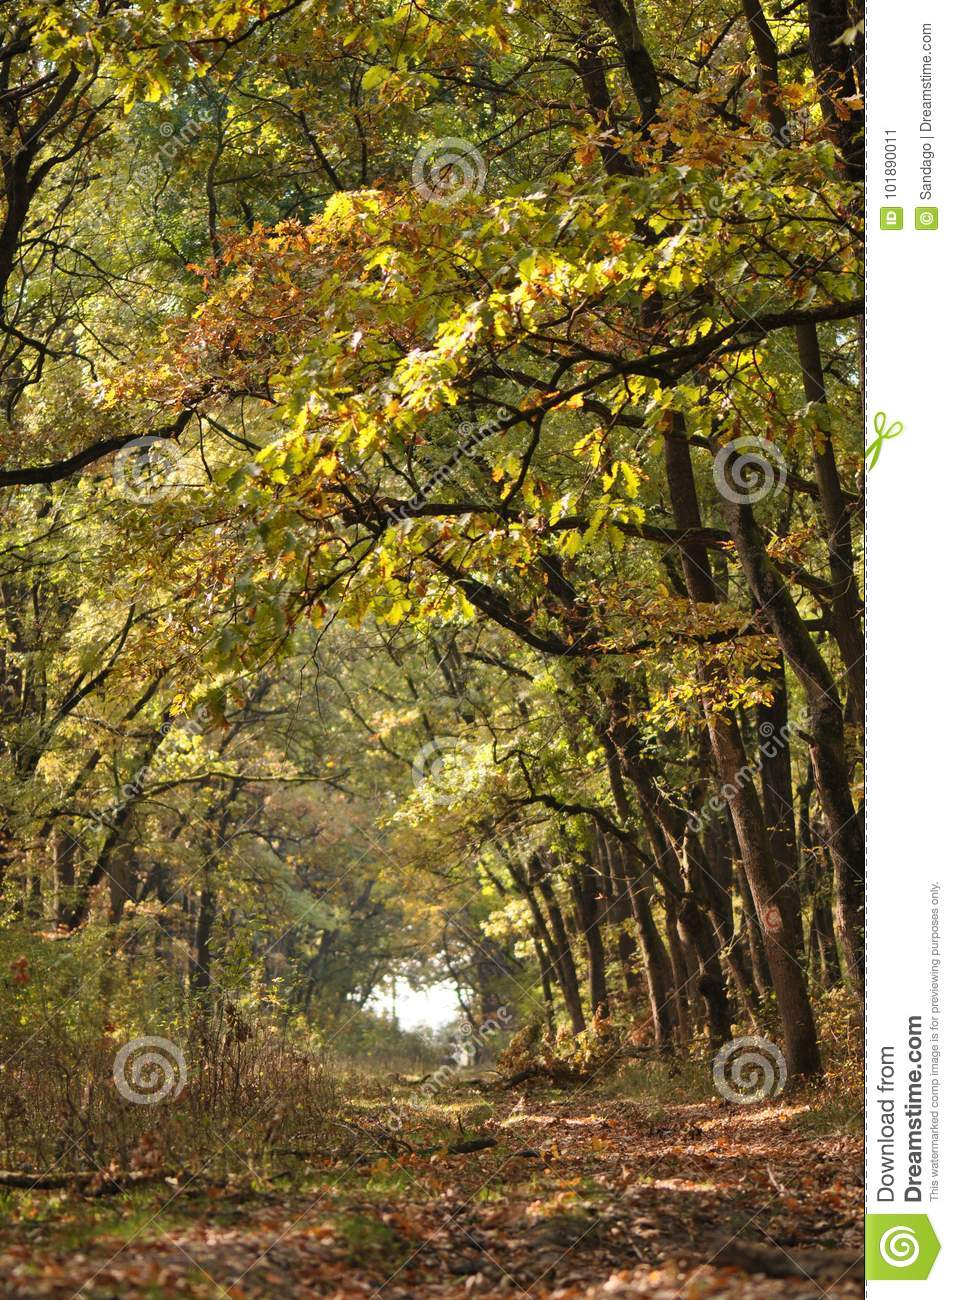 Autumn fall forest stock image. Image of garden, park - 101890011